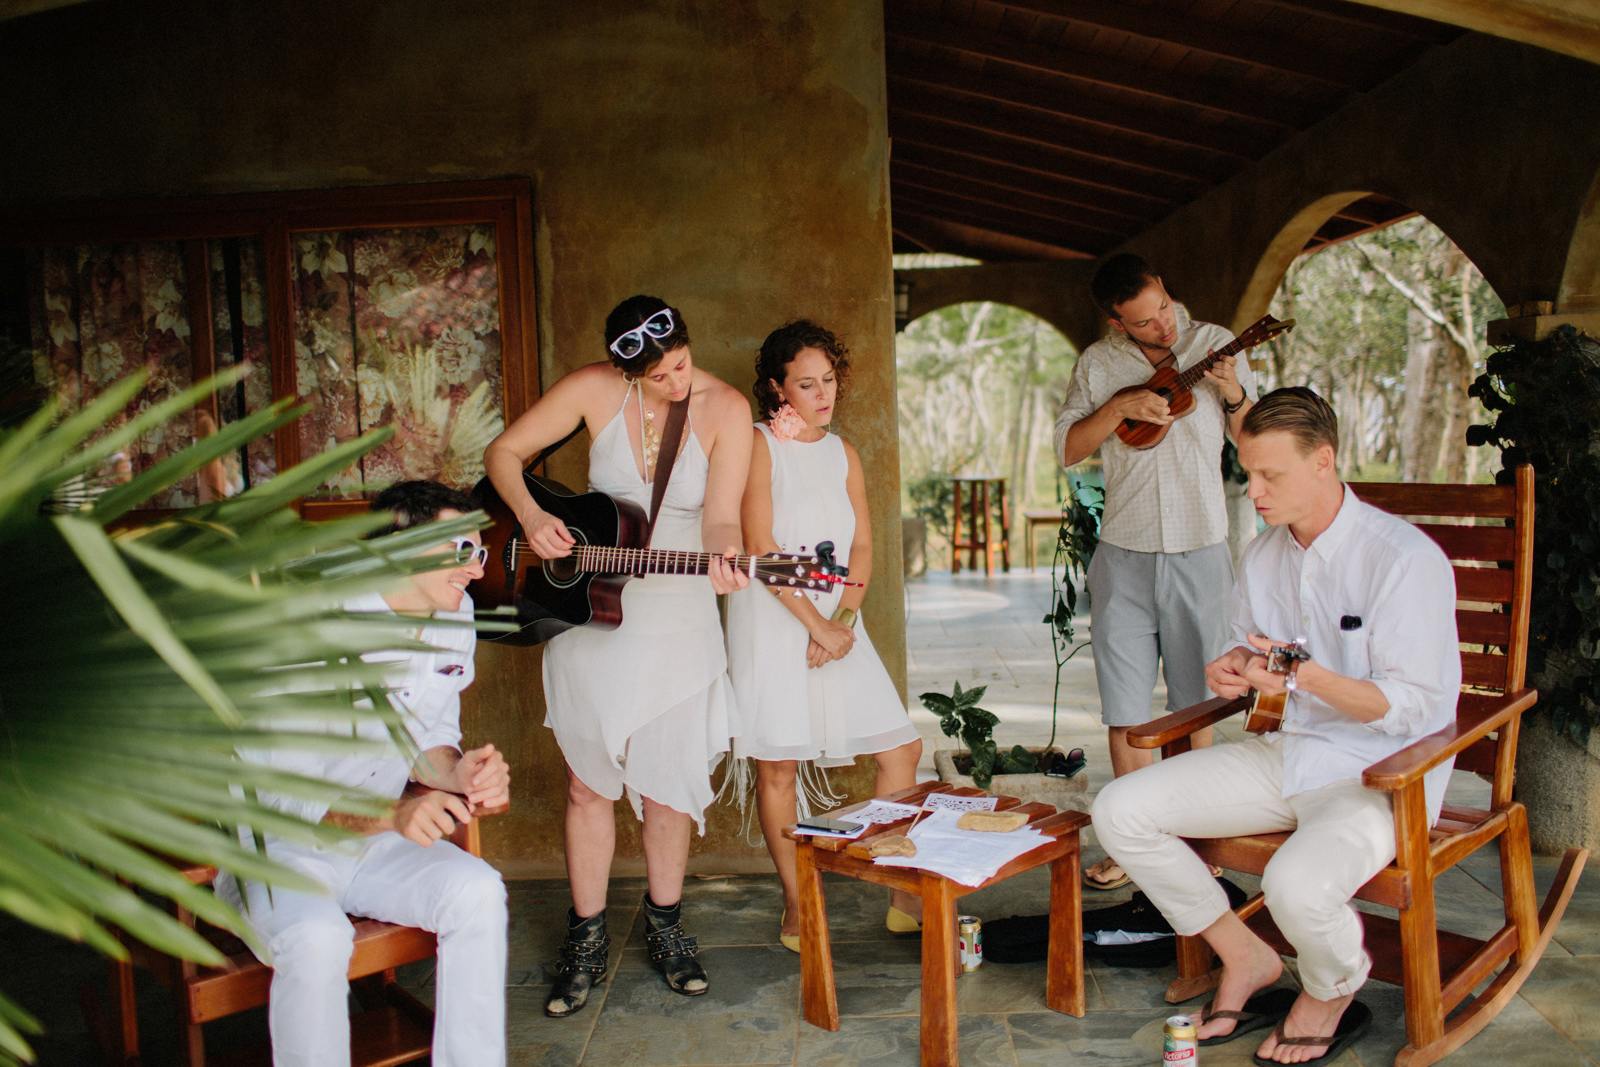 Singing during the wedding. Nicaragua photography